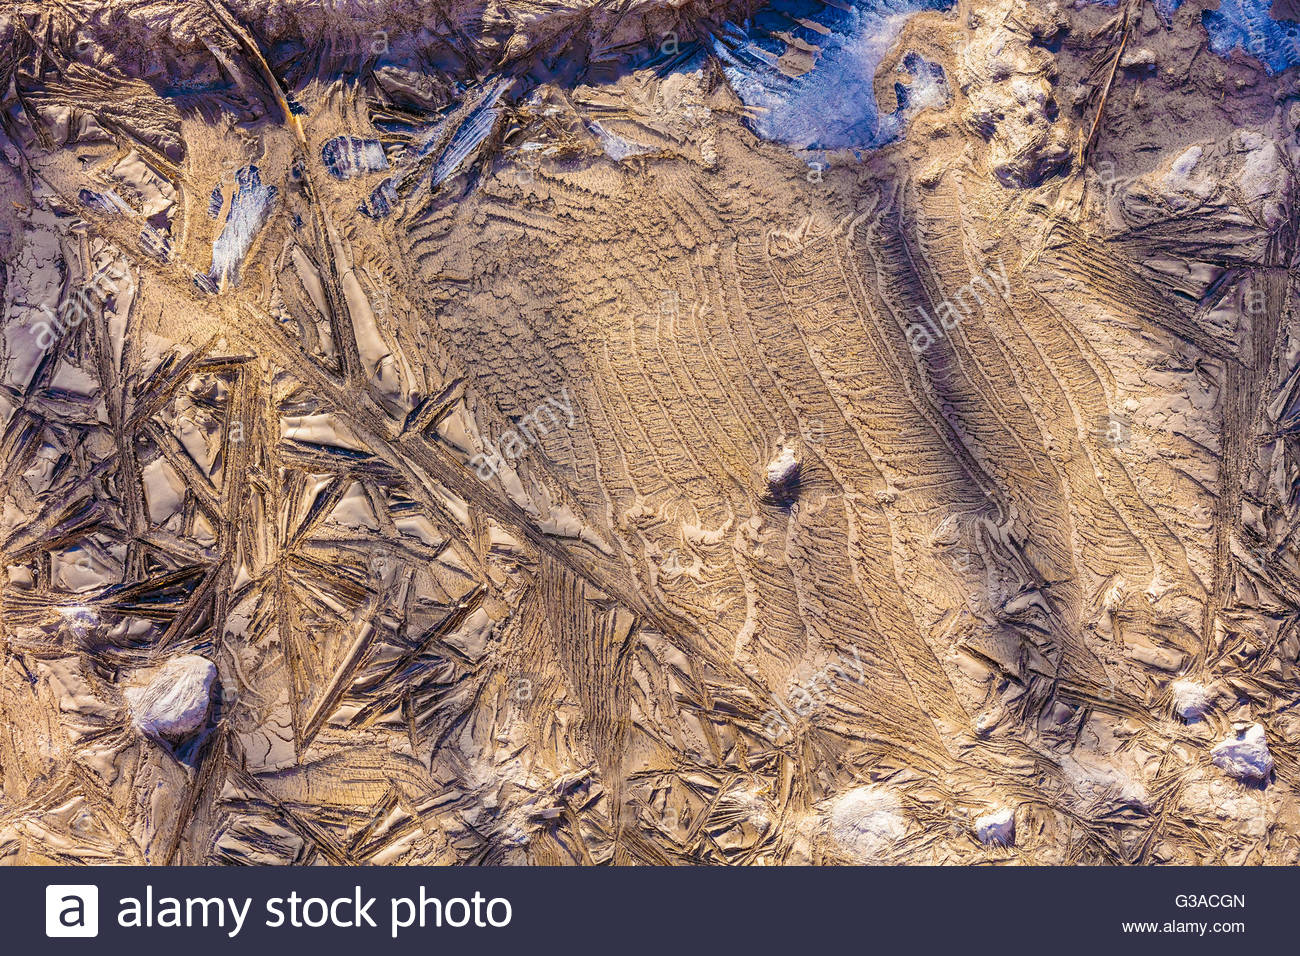 Abstract patterns formed as water saturated mud freezes in winter in Bluffer's Park in Toronto Ontario Canada - Stock Image